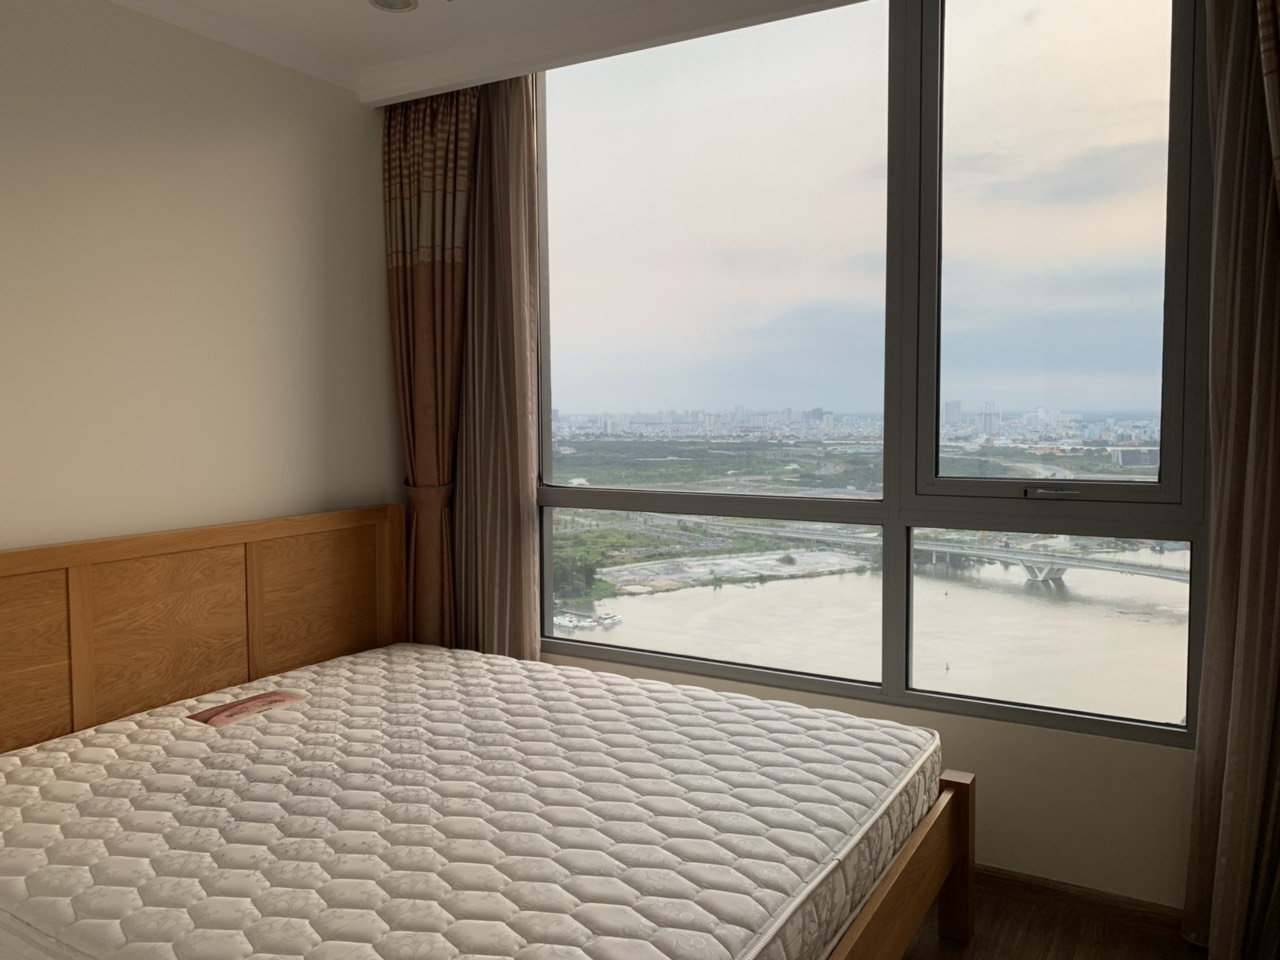 apartment for rent vinhomes central park binh thanh district hcmc BT105814 (3)